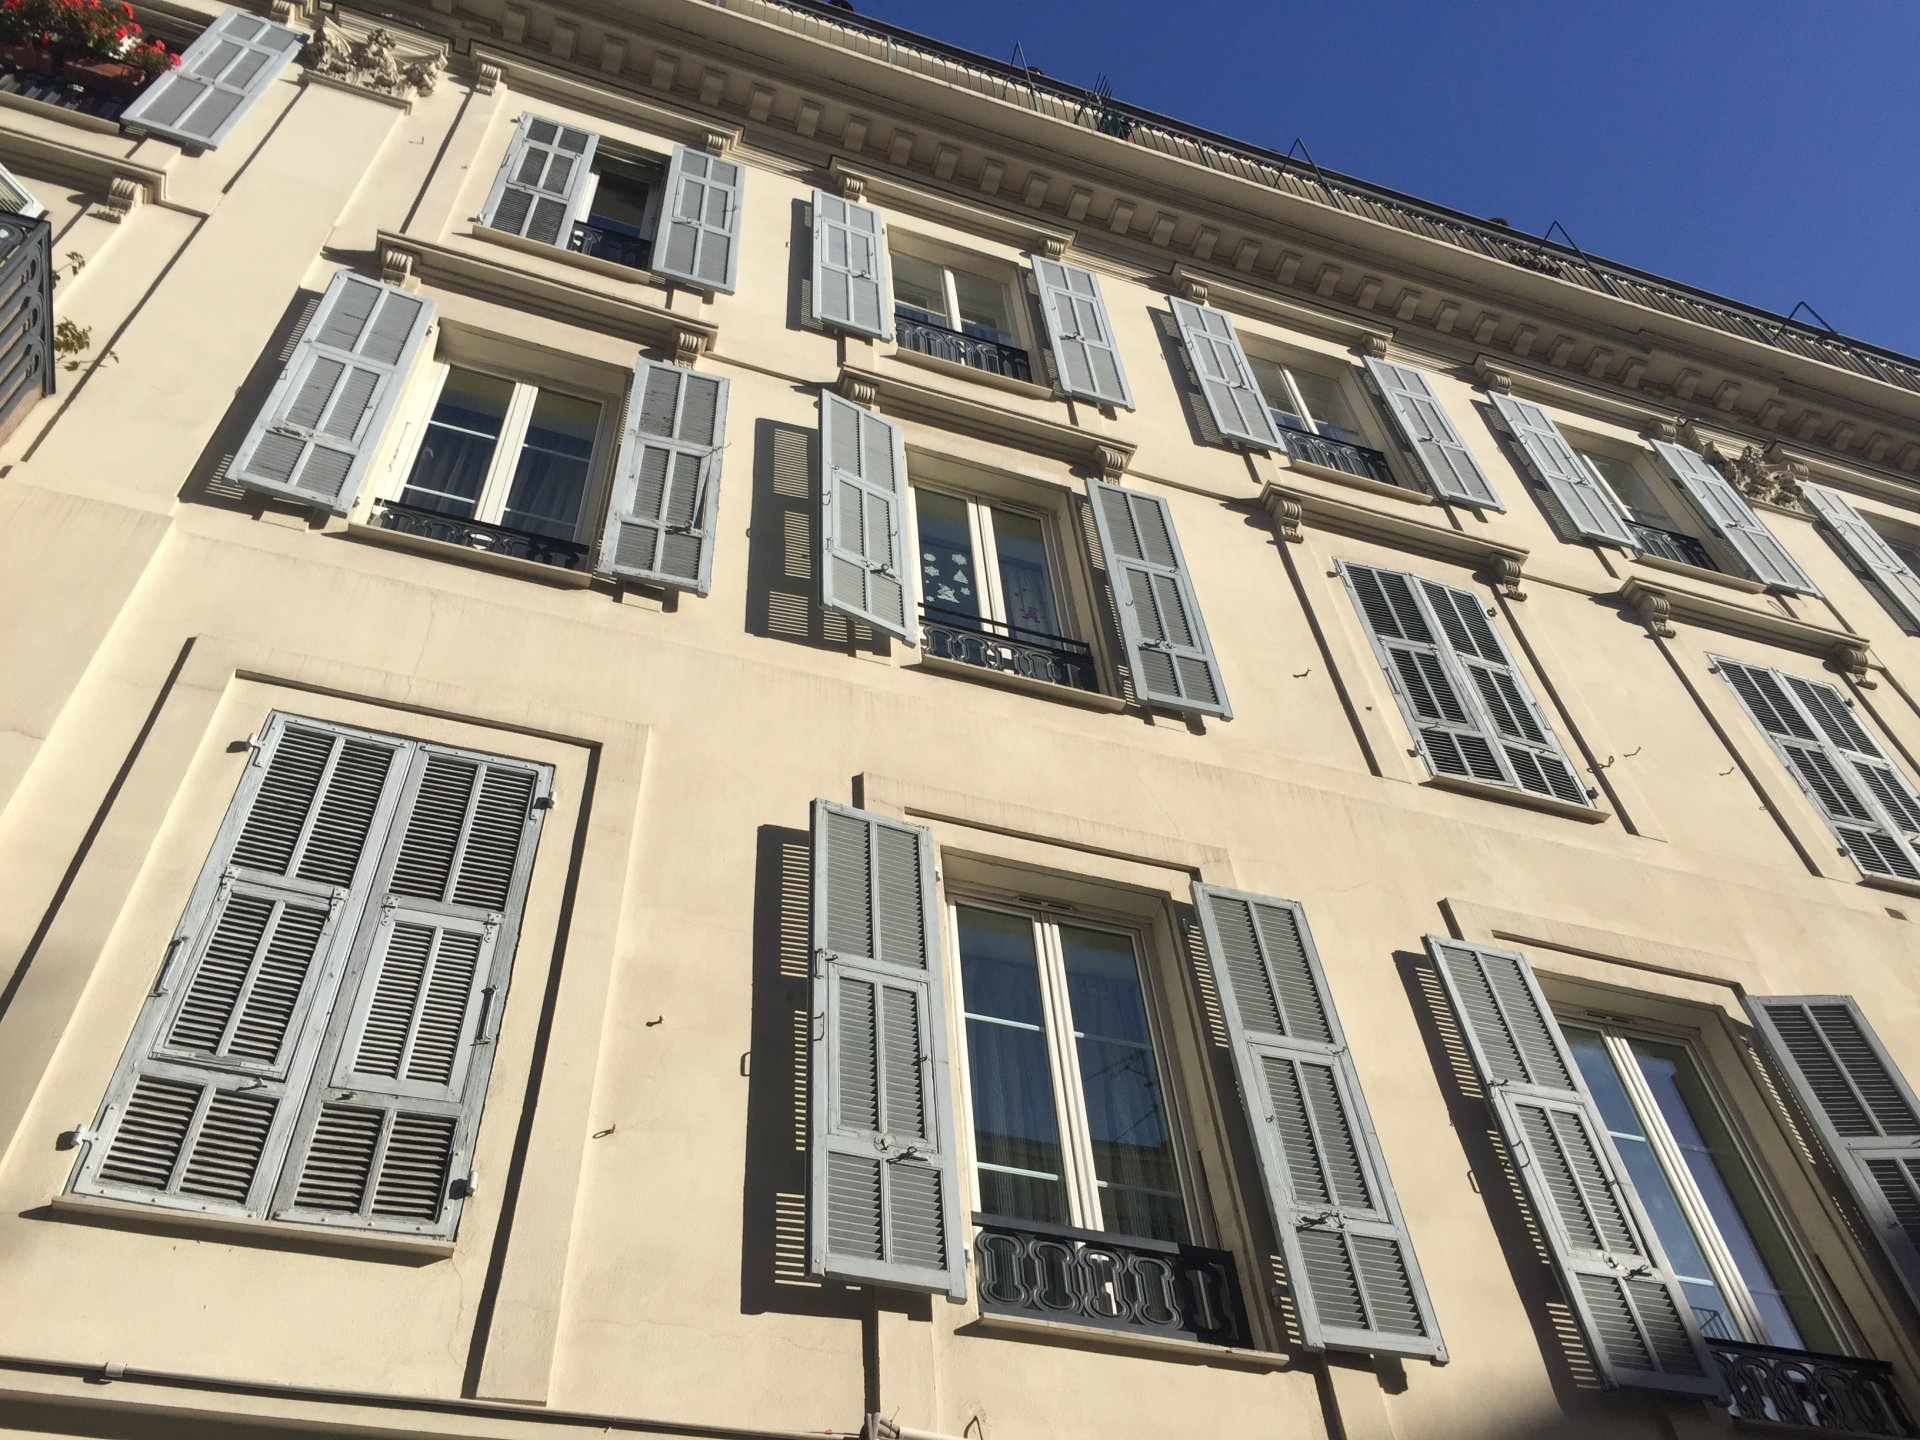 NICE CITY CENTRE - Large 3 bed apartment